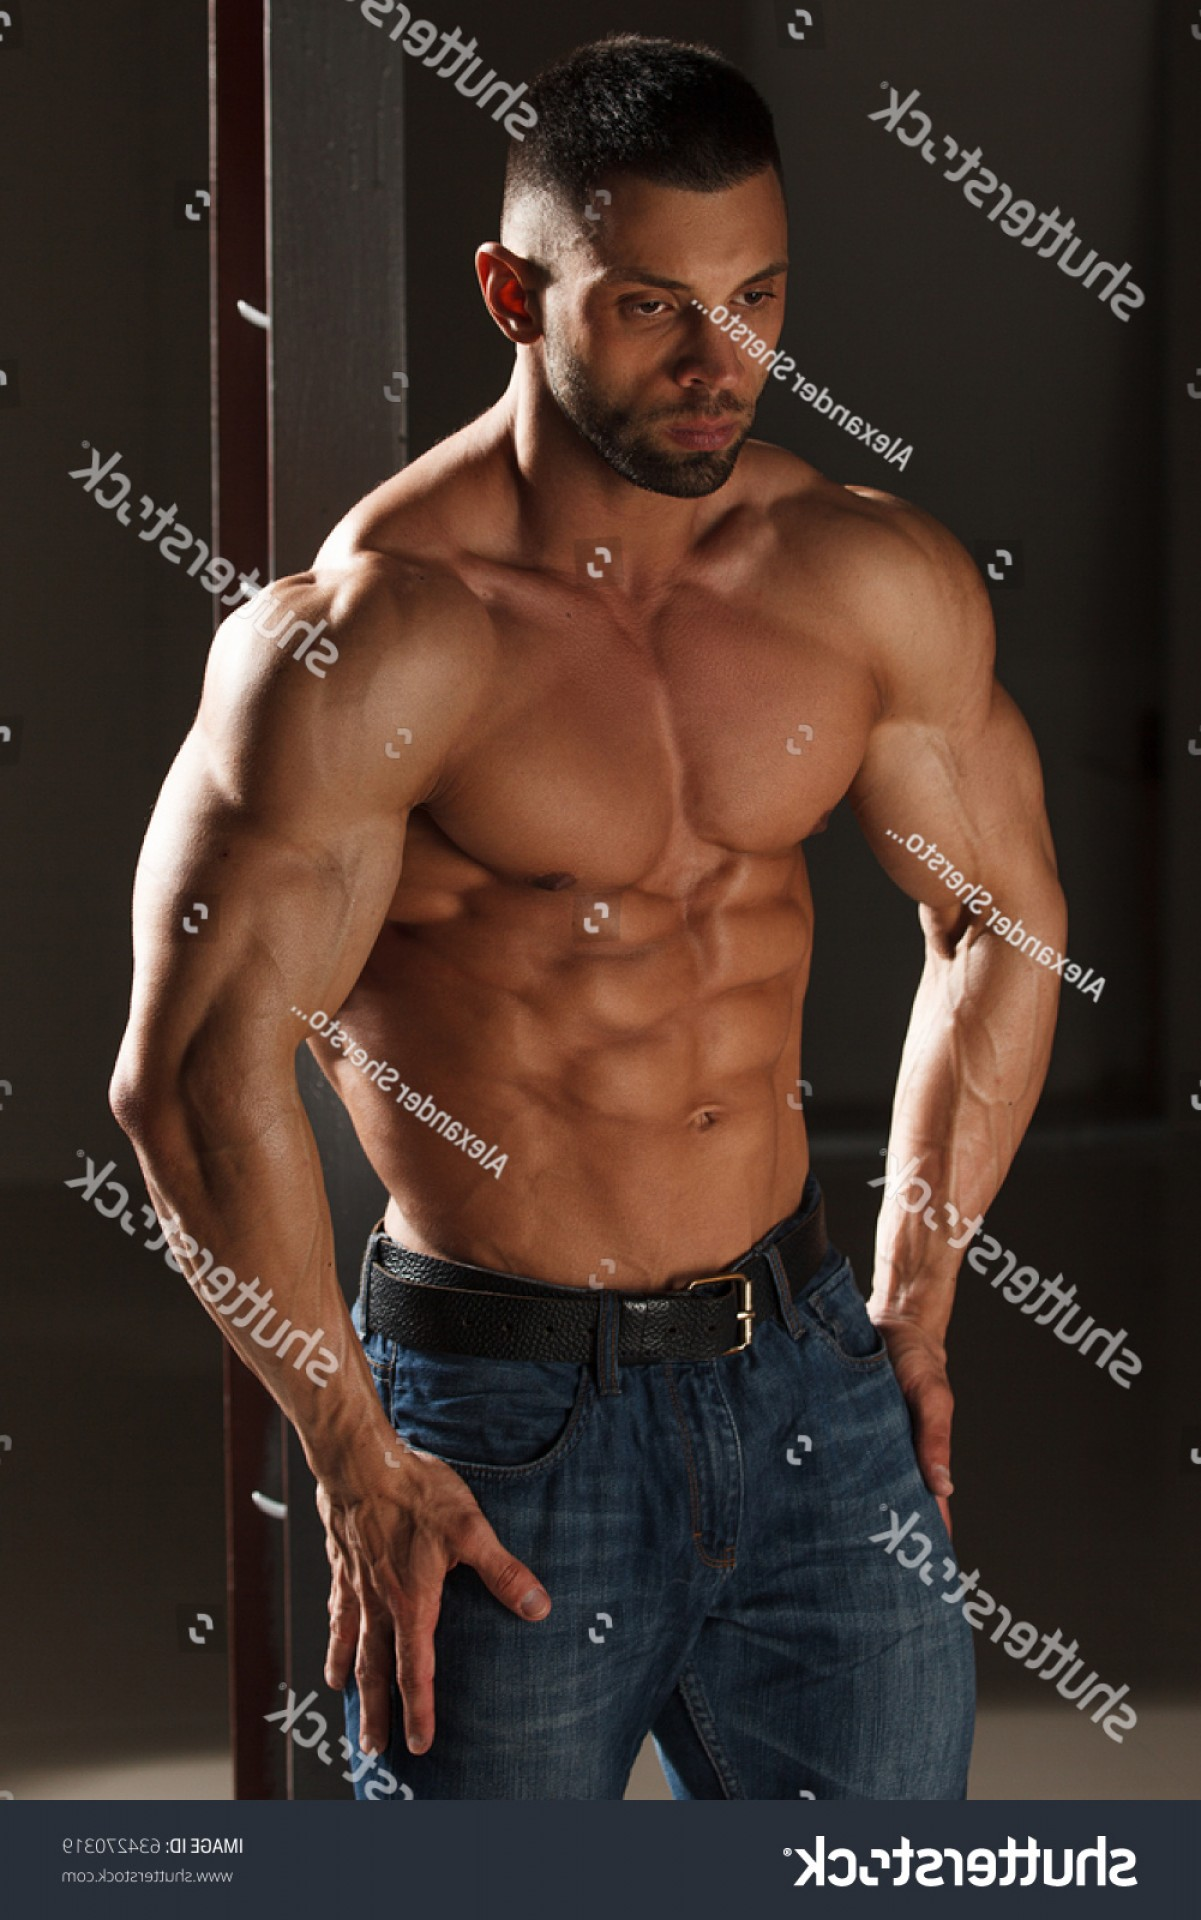 Vector Abstract Woman Bodybuilder Physique: Portrait Handsome Young Man Great Physique